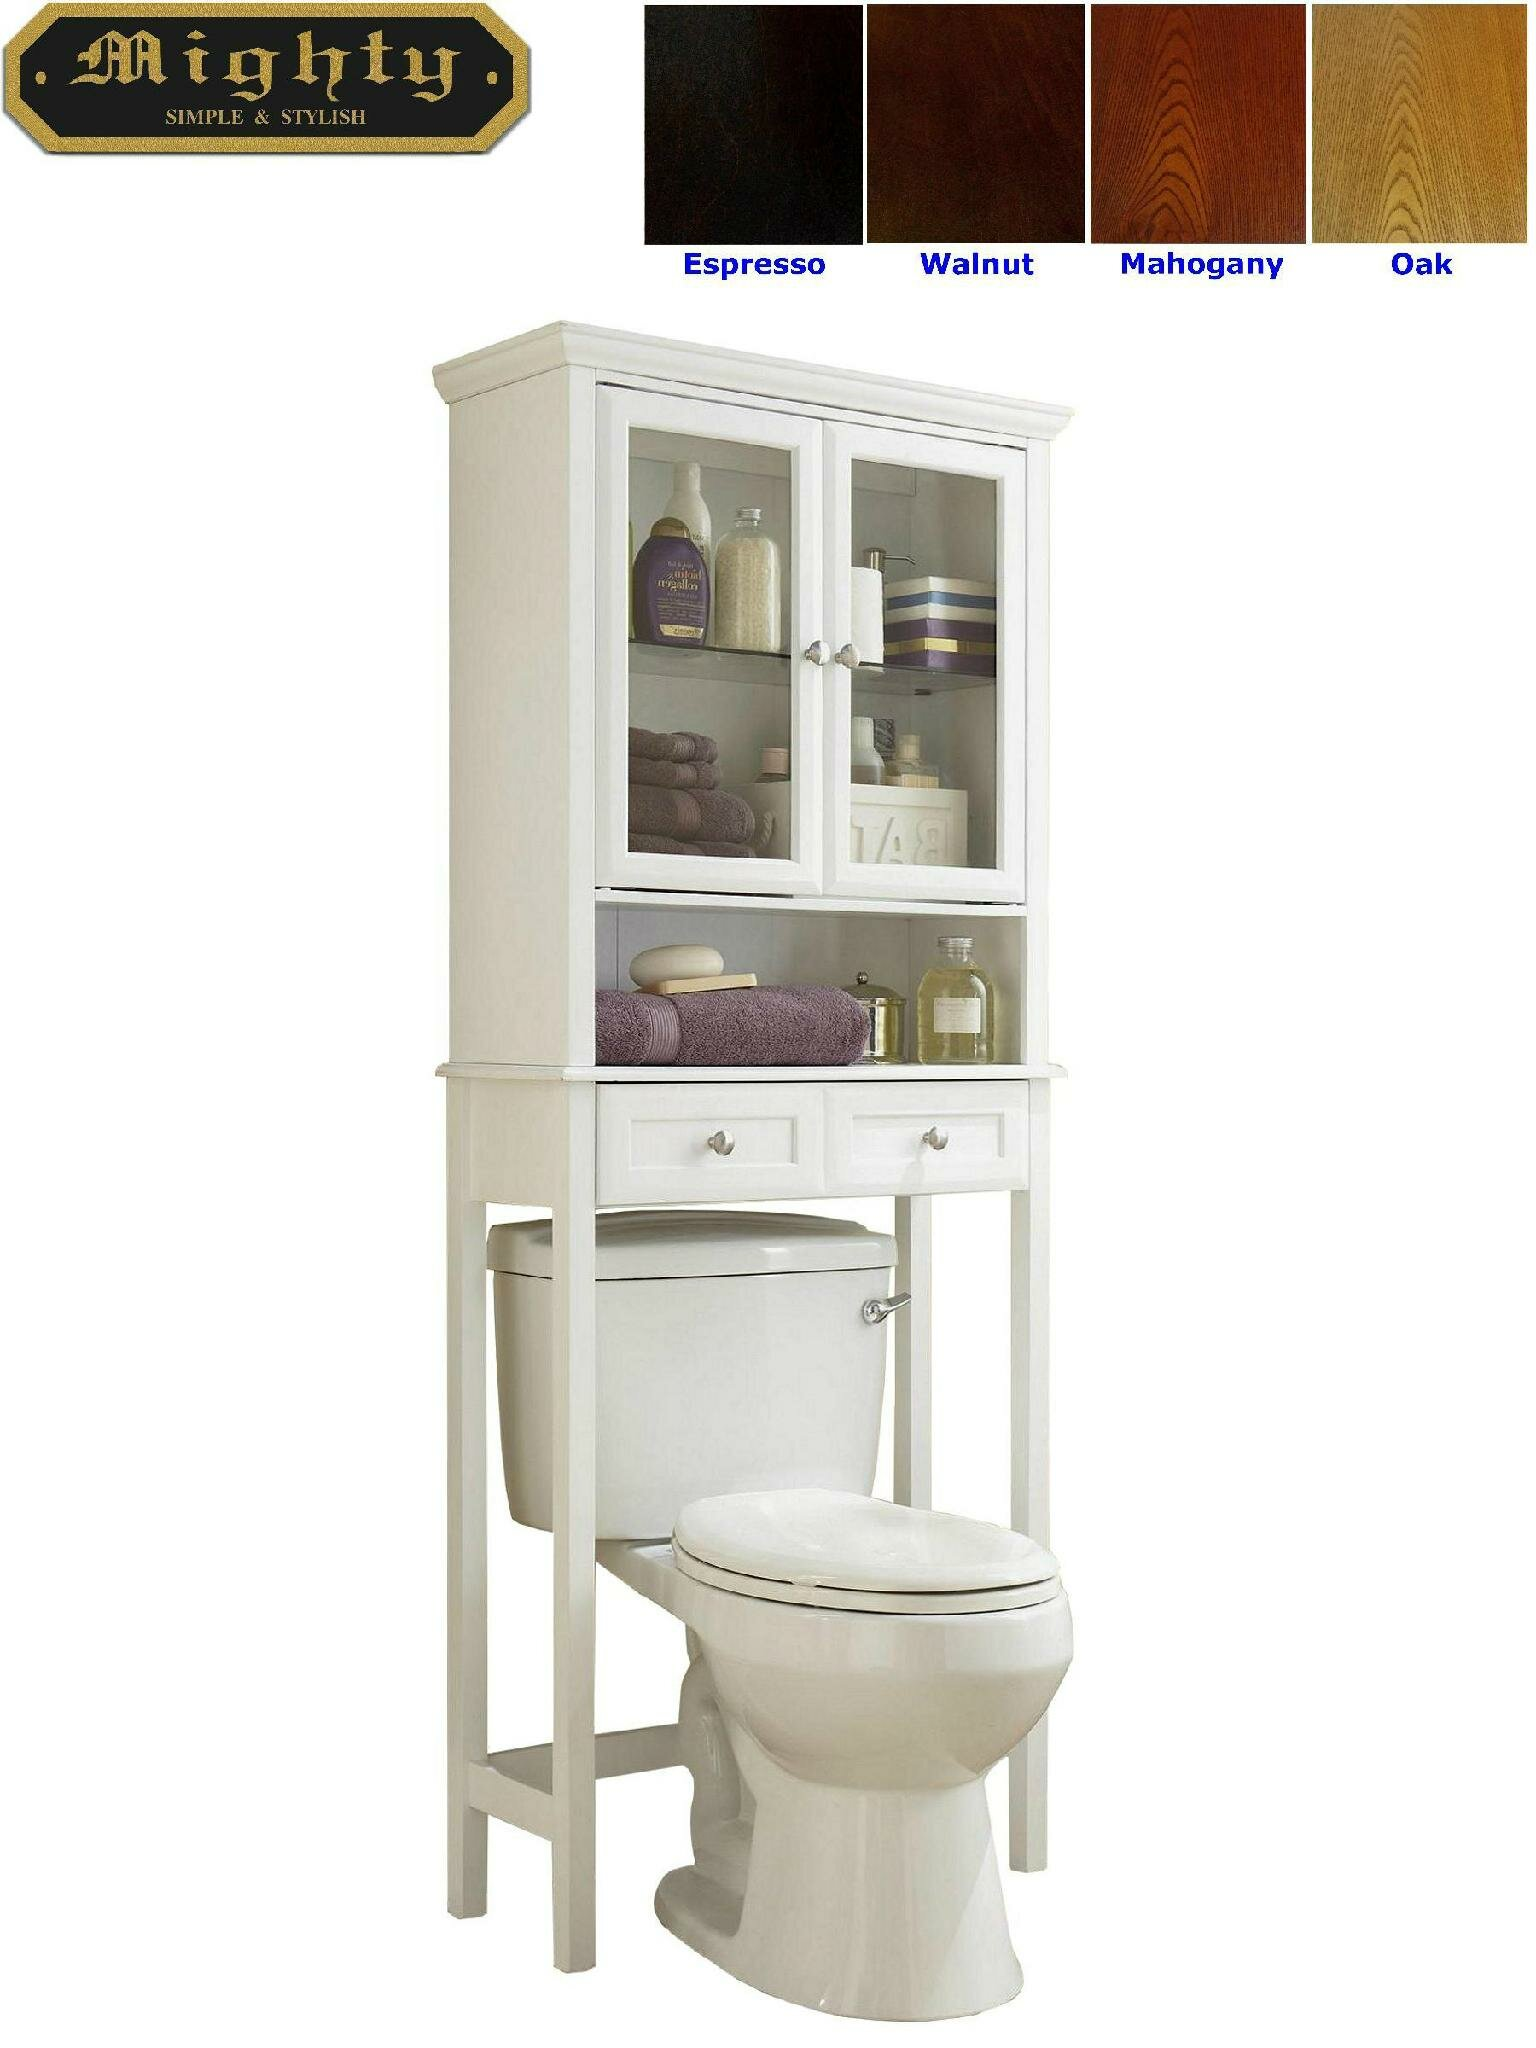 Bathroom Metal Etagere Bathroom Toilet Etagere Space